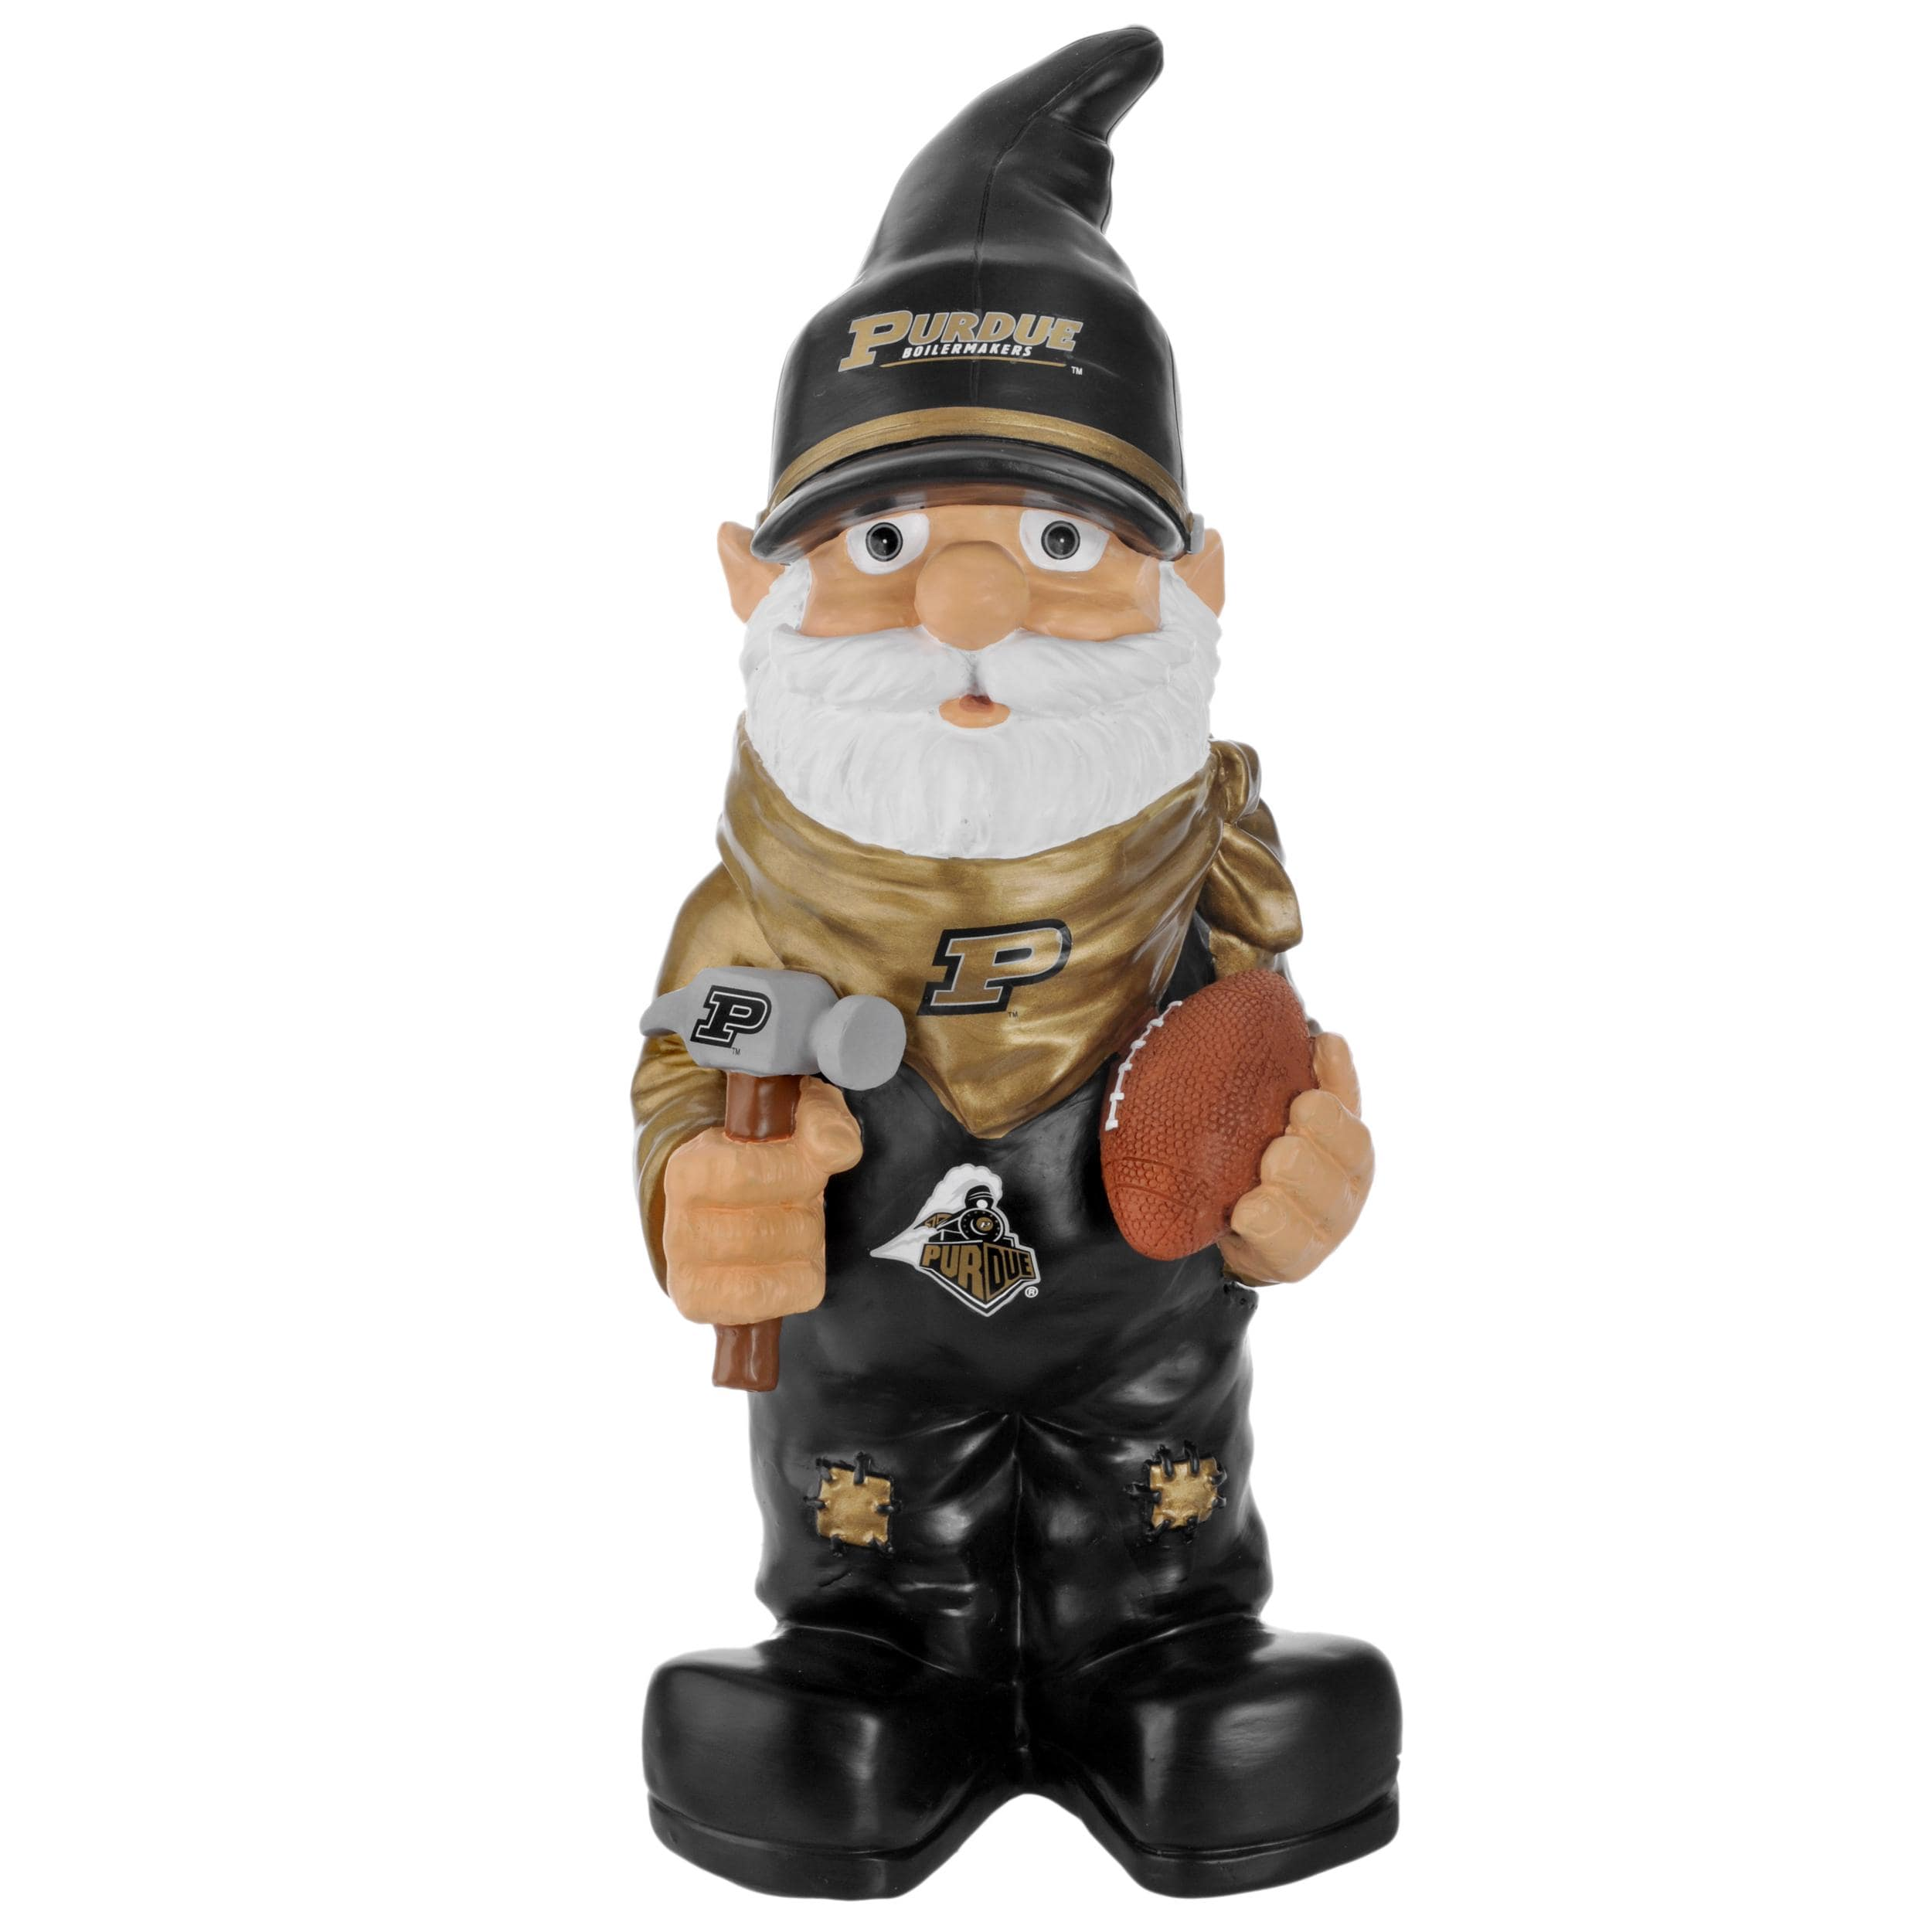 Purdue Boilermakers 11-inch Thematic Garden Gnome - Thumbnail 2